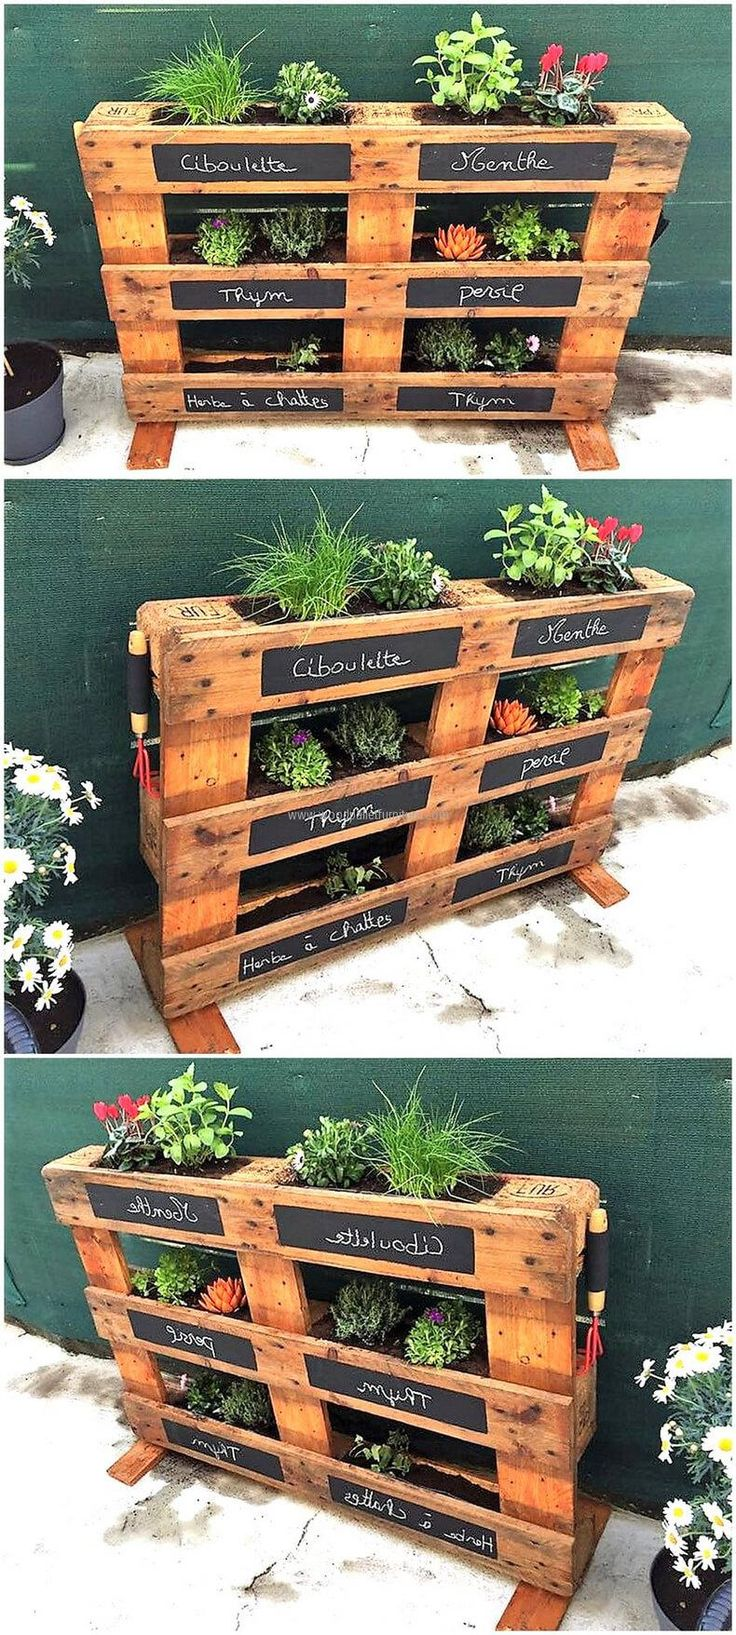 We have shown the reclaimed wood pallet herb planter idea here with which one can decorate the home with the herbs and flowers from inside as well because it will not create a mess. It can be copied for the lawn decoration as well.